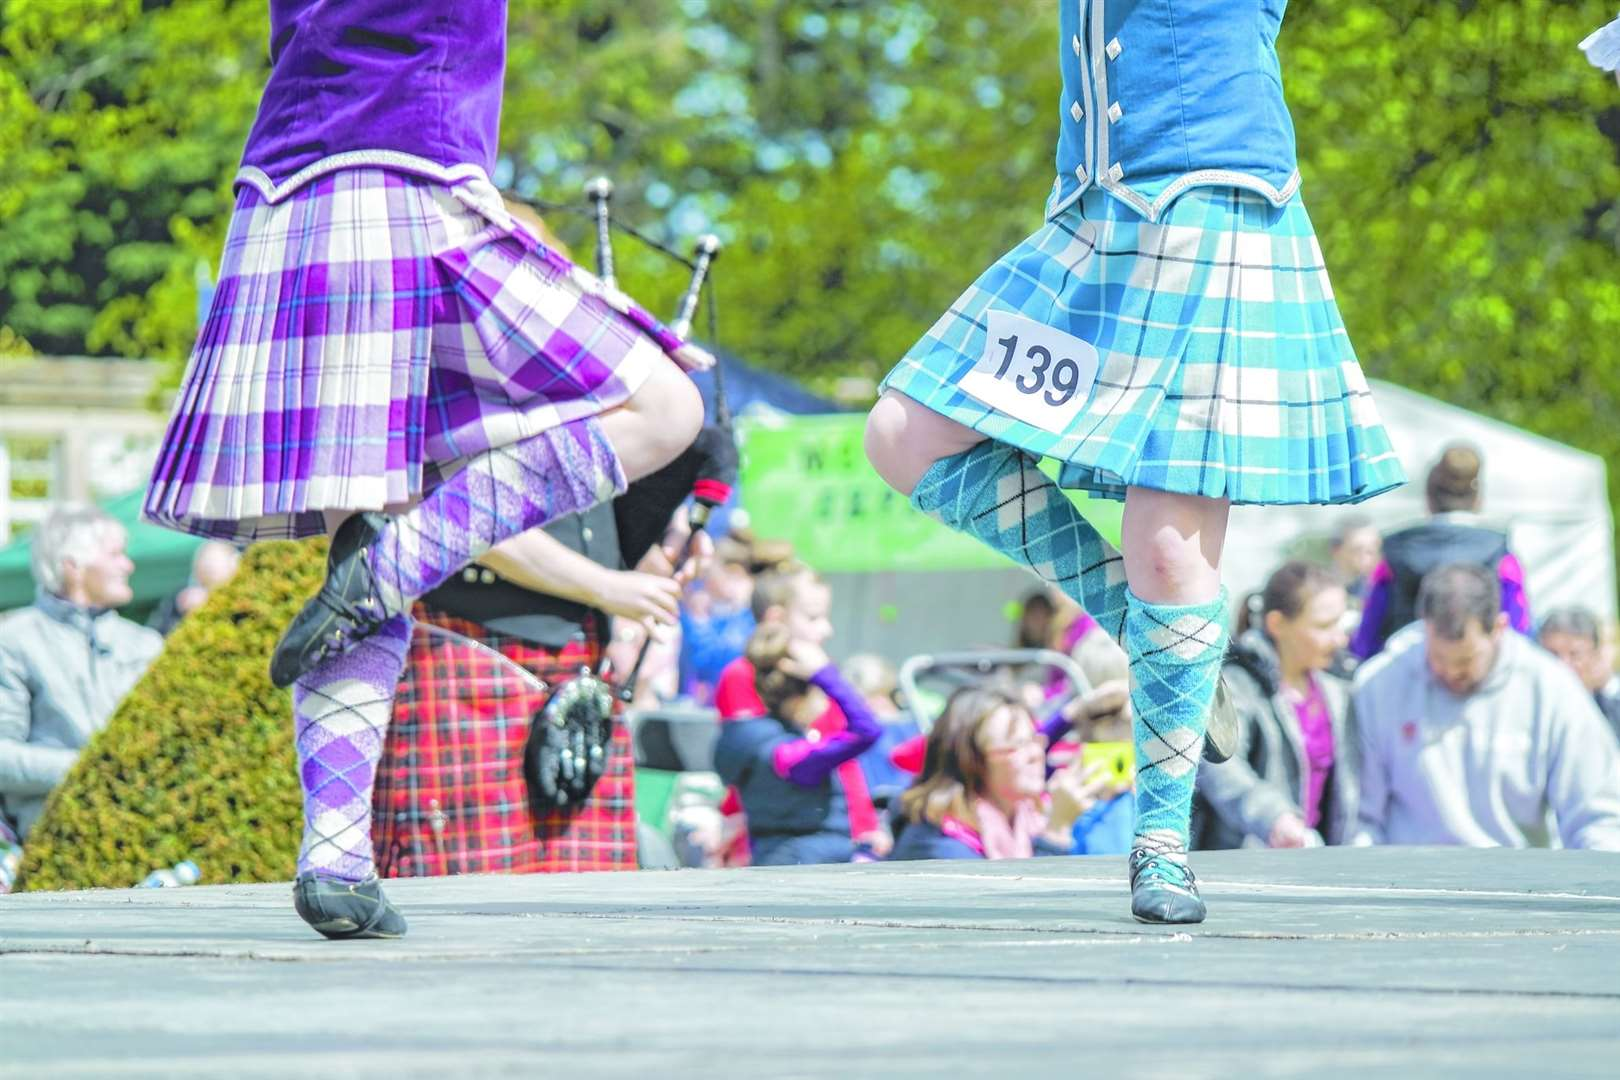 Don't miss your local Highland Games. Picture: Adobe Stock